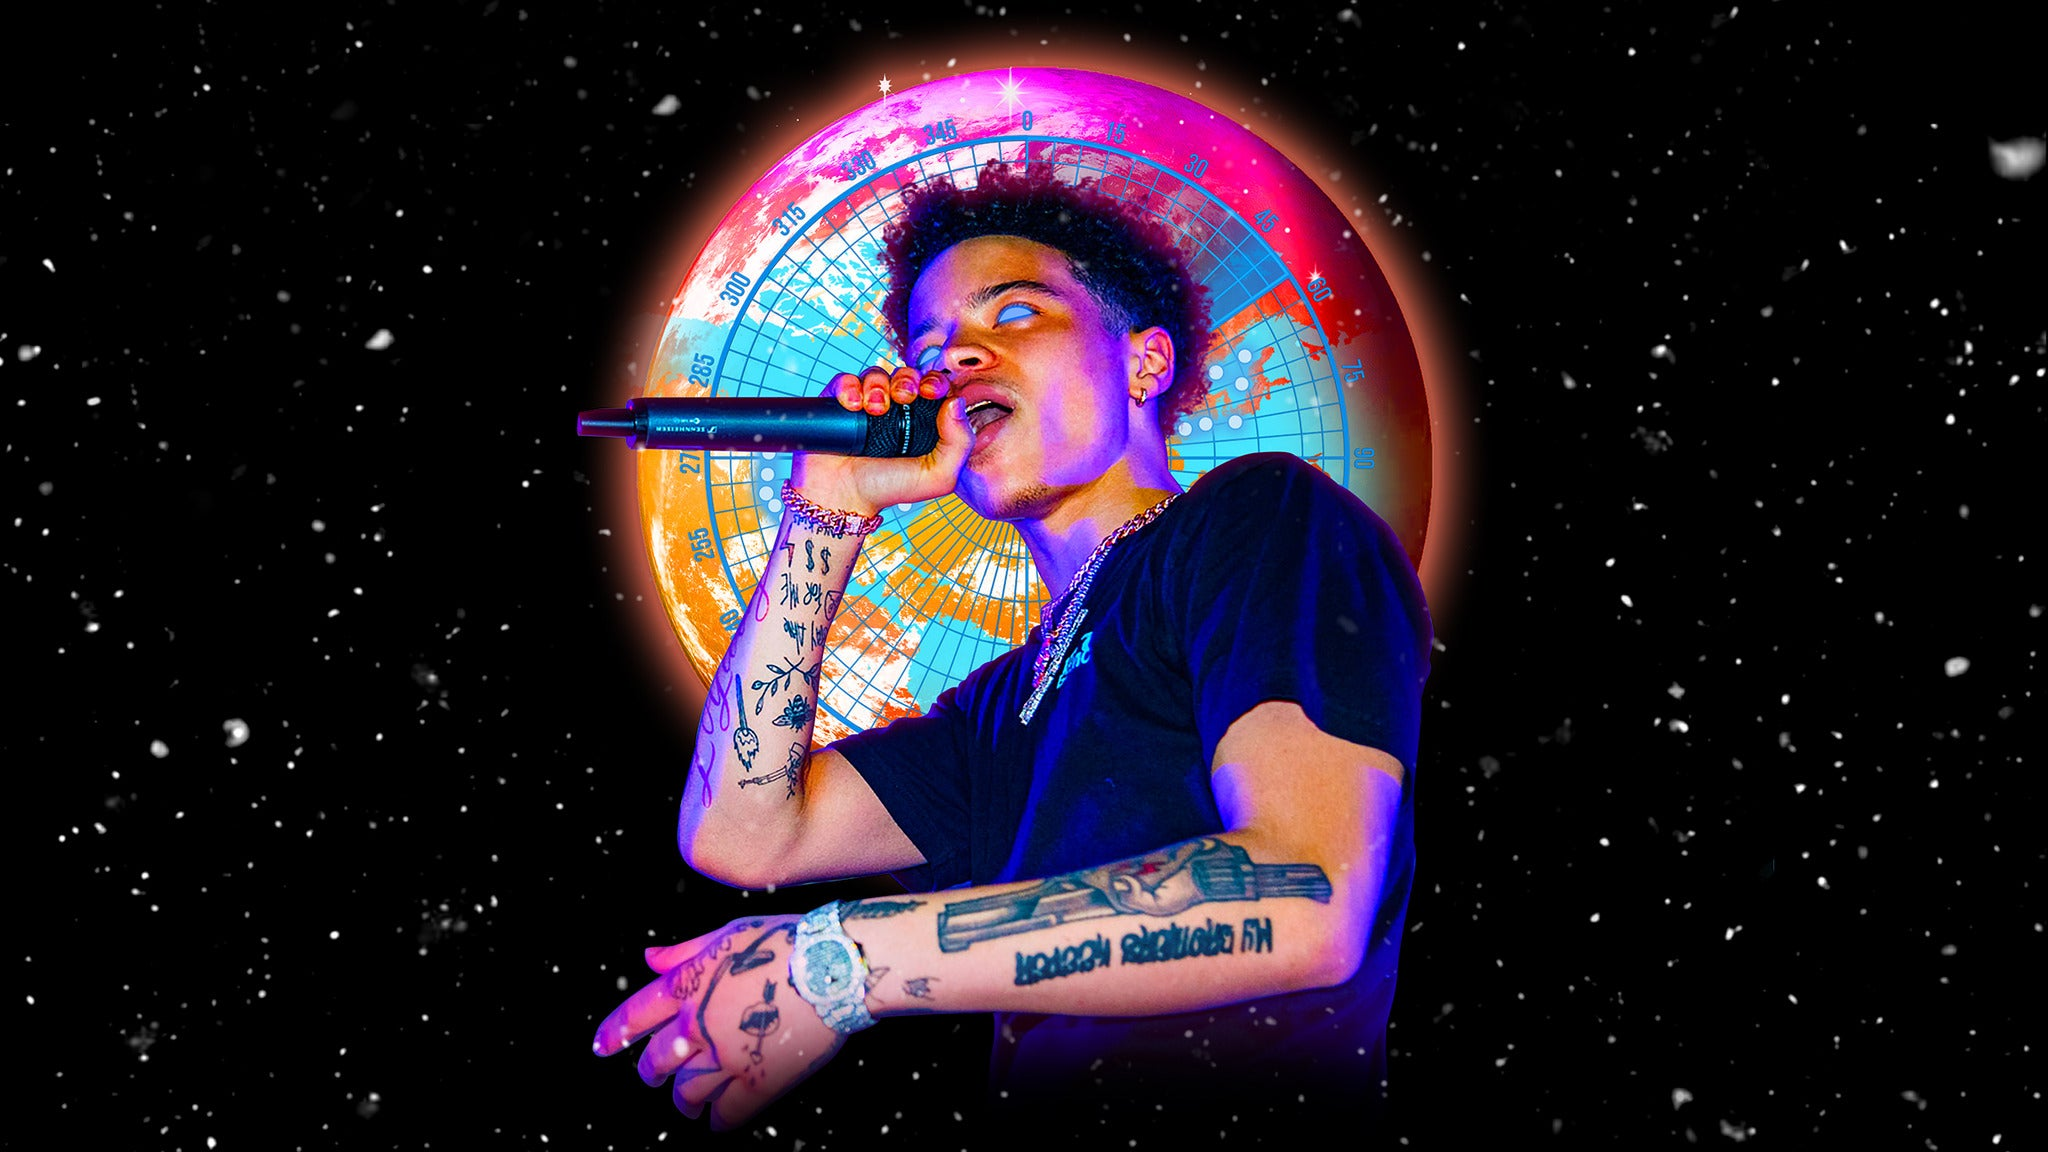 Lil Mosey - Certified Hitmaker North American Tour 2020